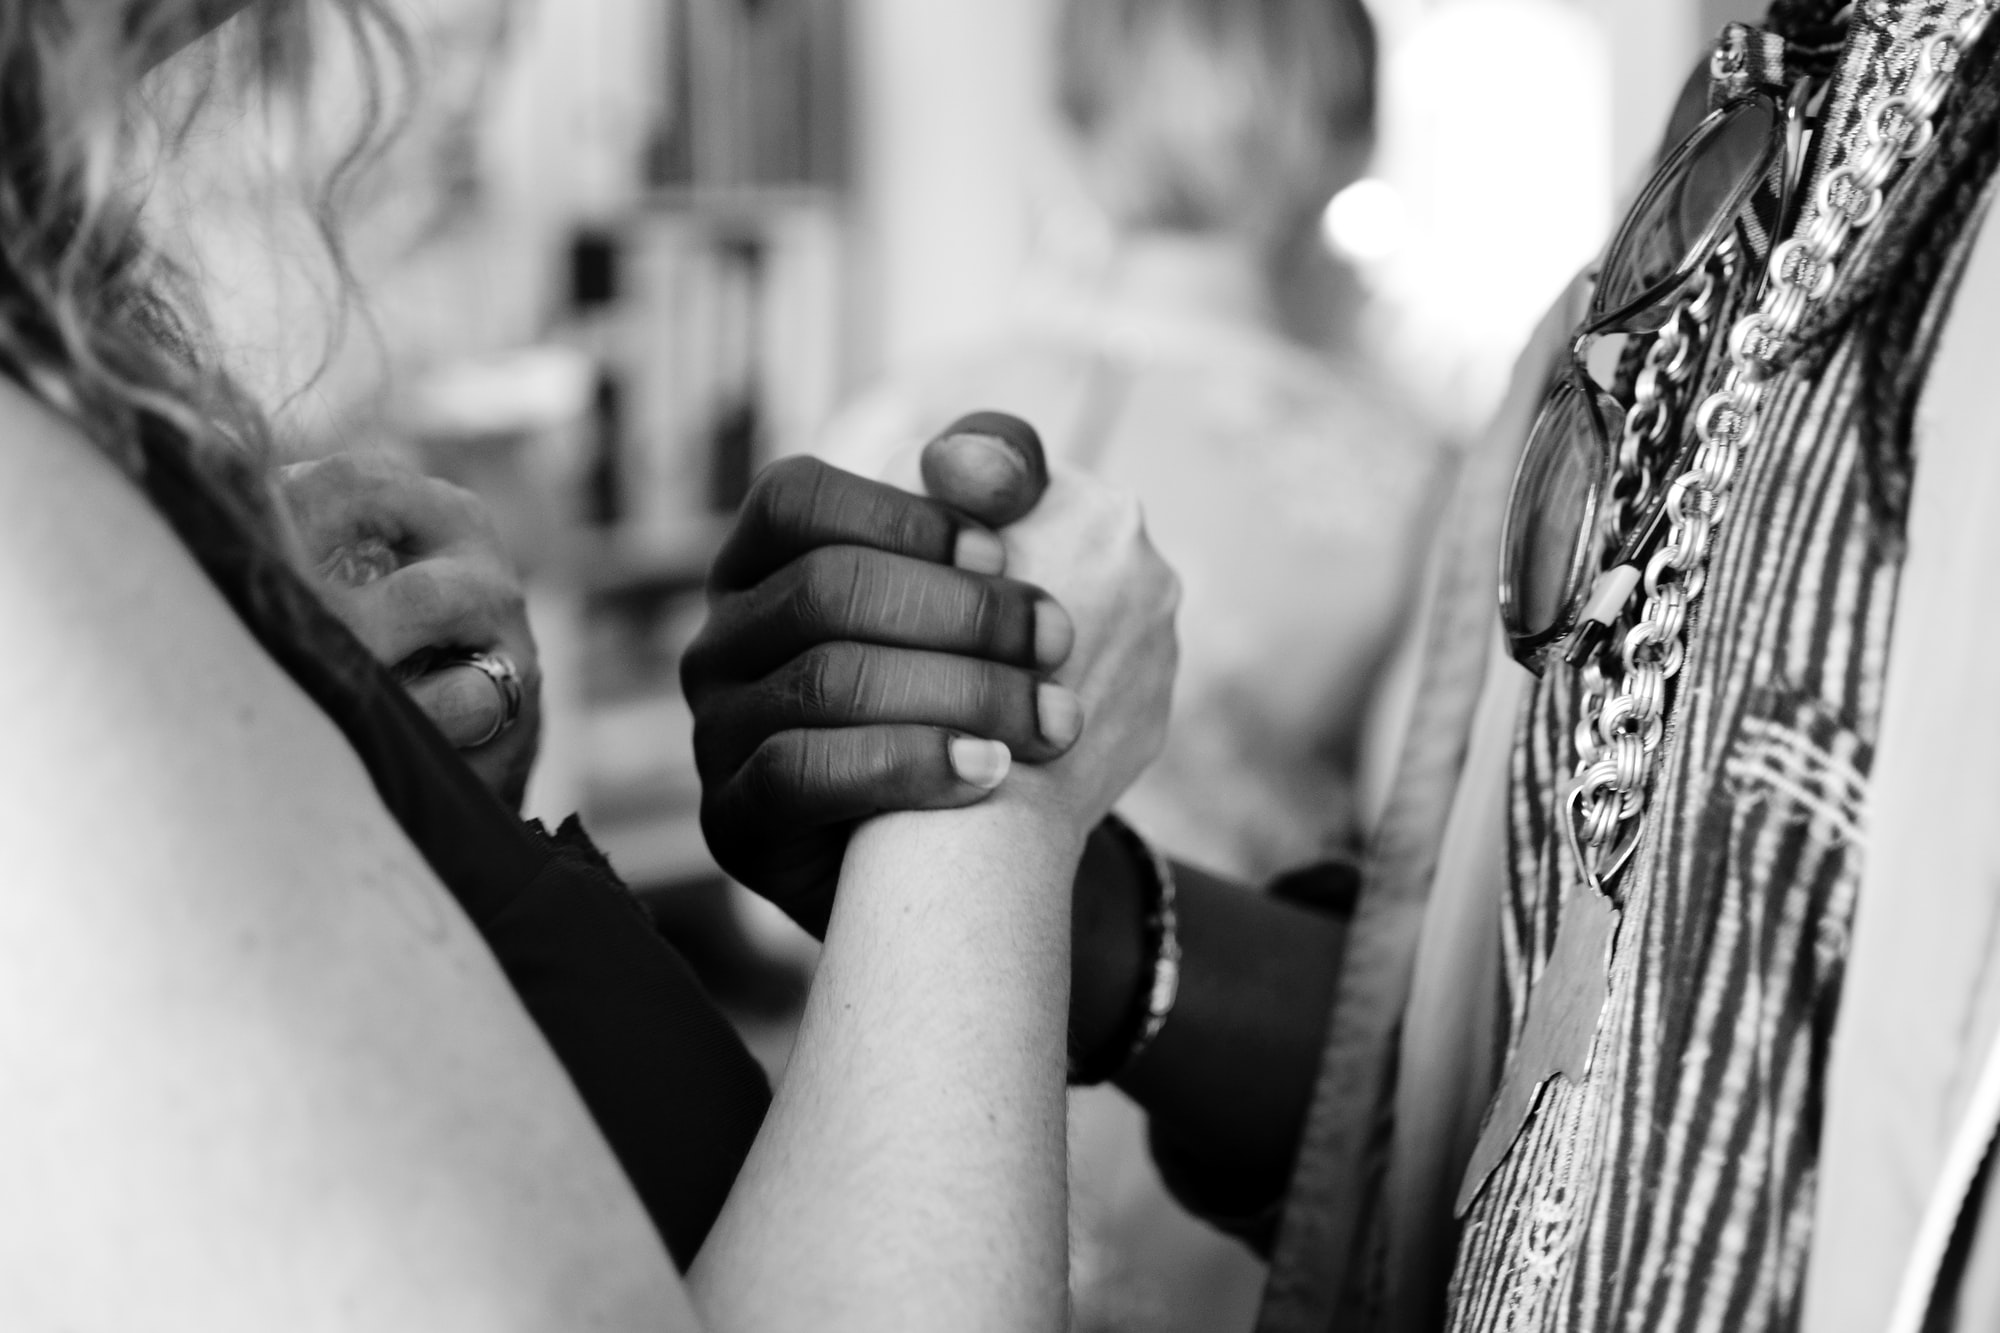 Two hands are clasped together, each half of a whole. Photo is in black-and-white.